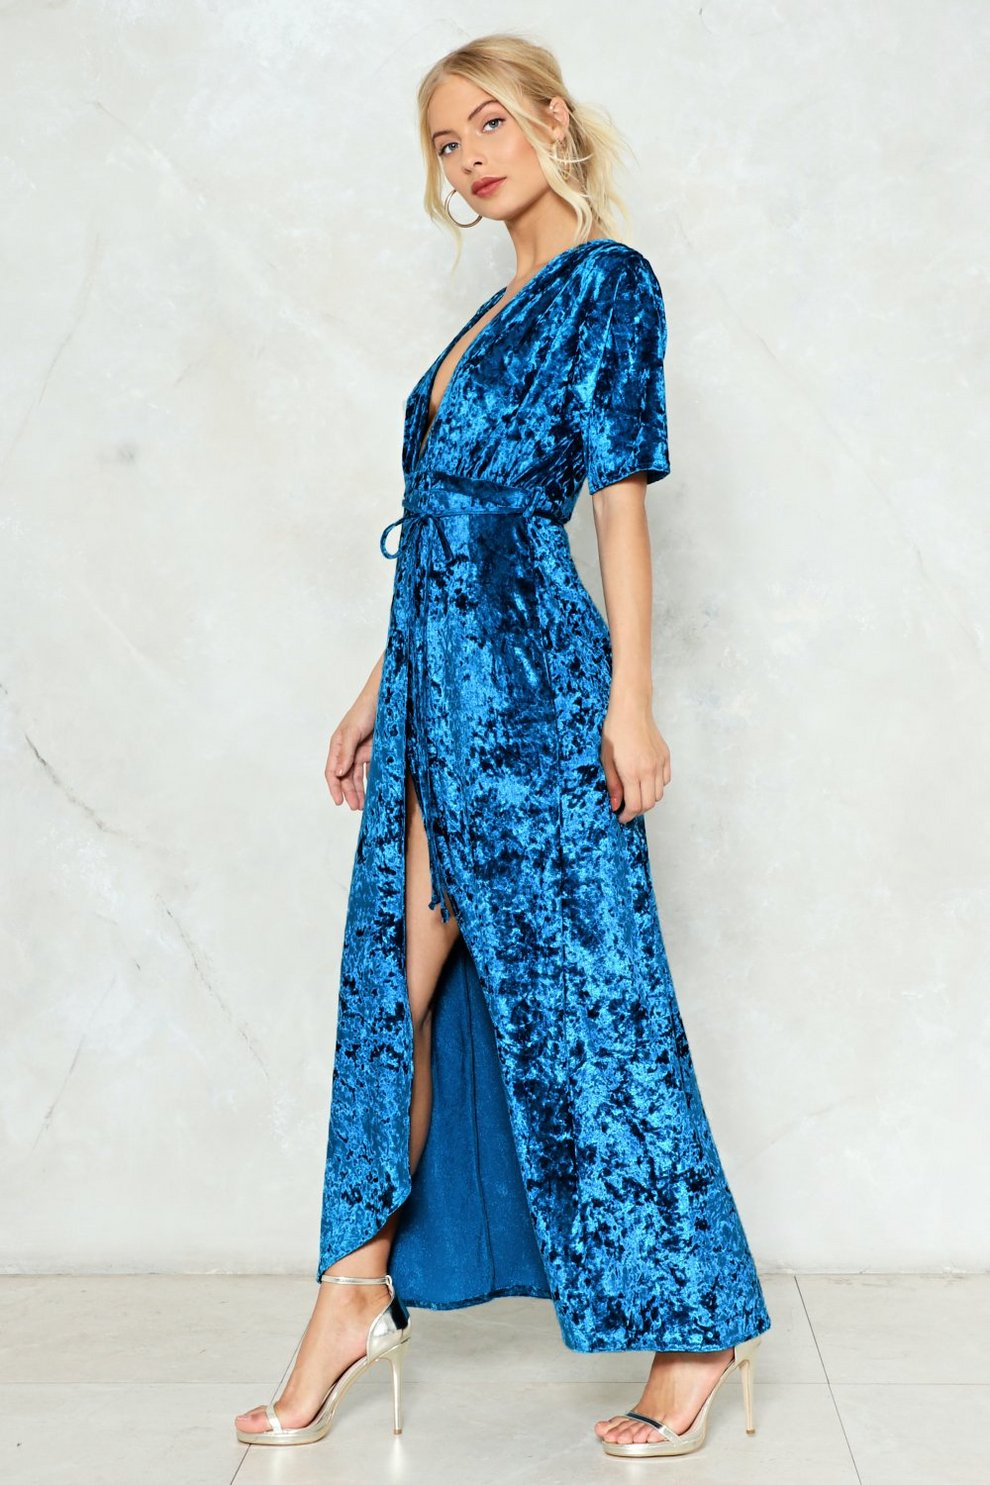 fa17c4755473b Deep Your Head Up Velvet Dress | Shop Clothes at Nasty Gal!